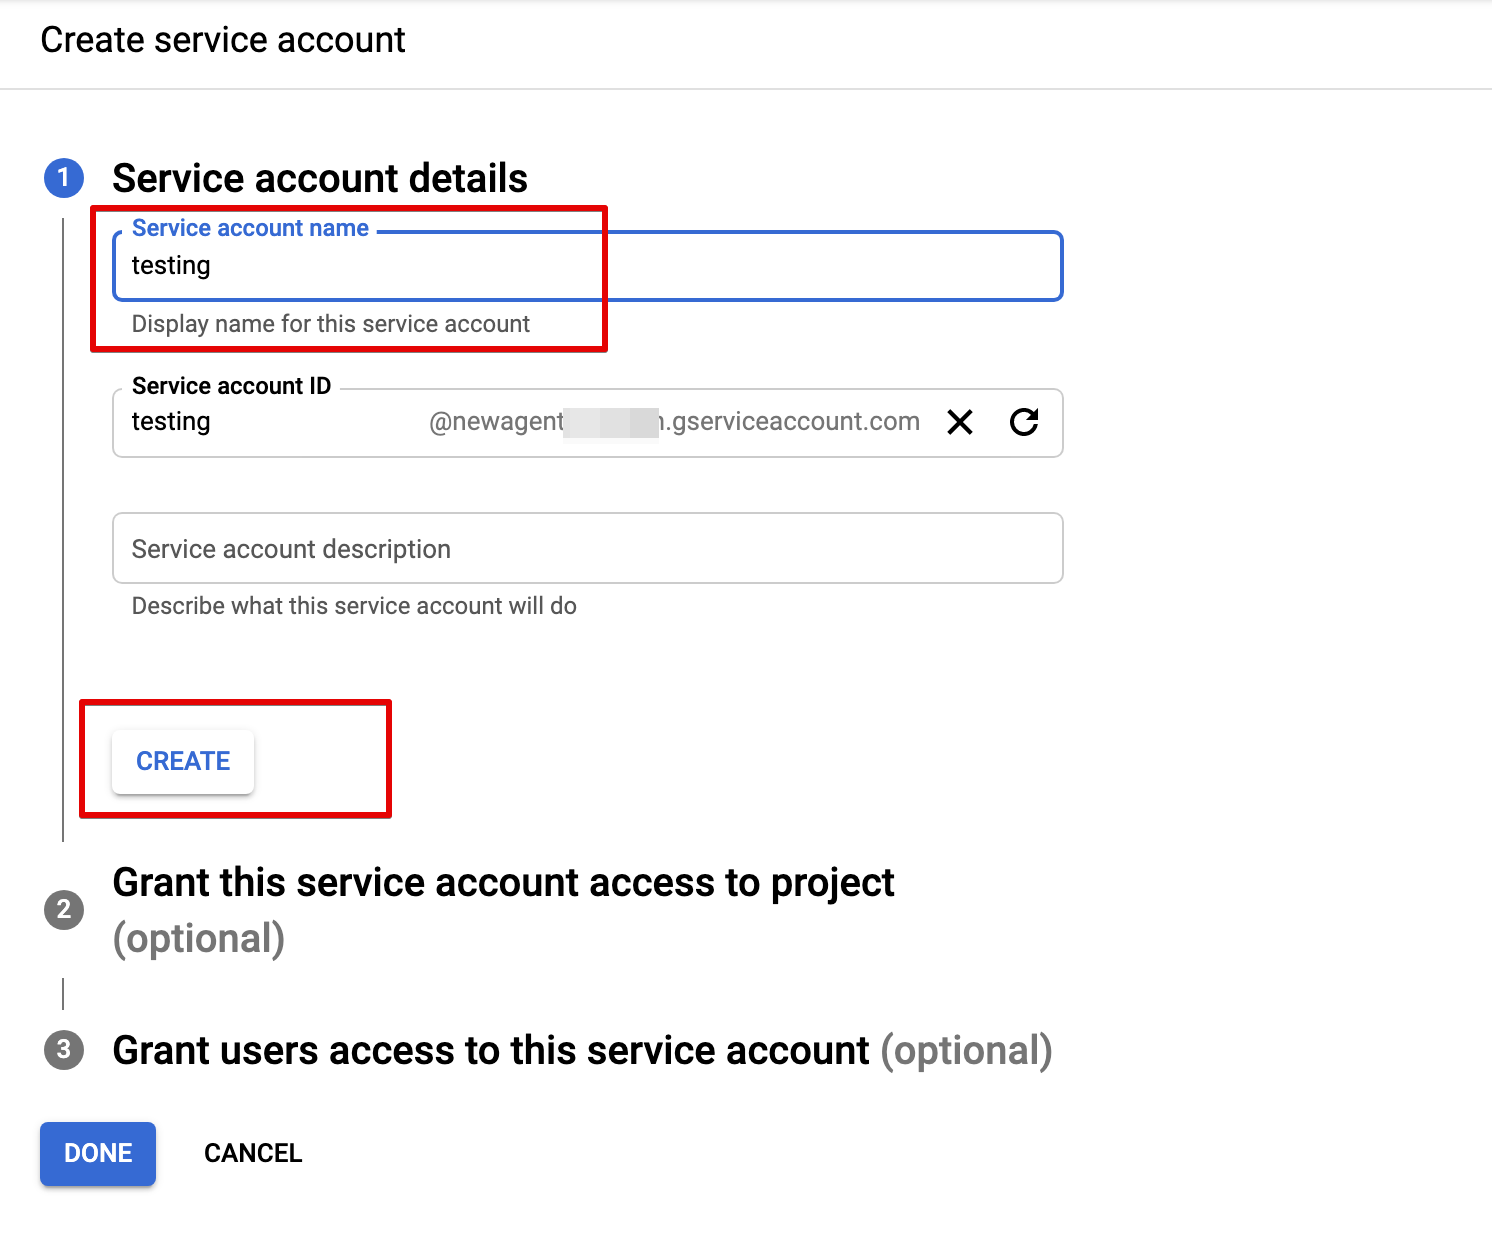 Fill in service account details